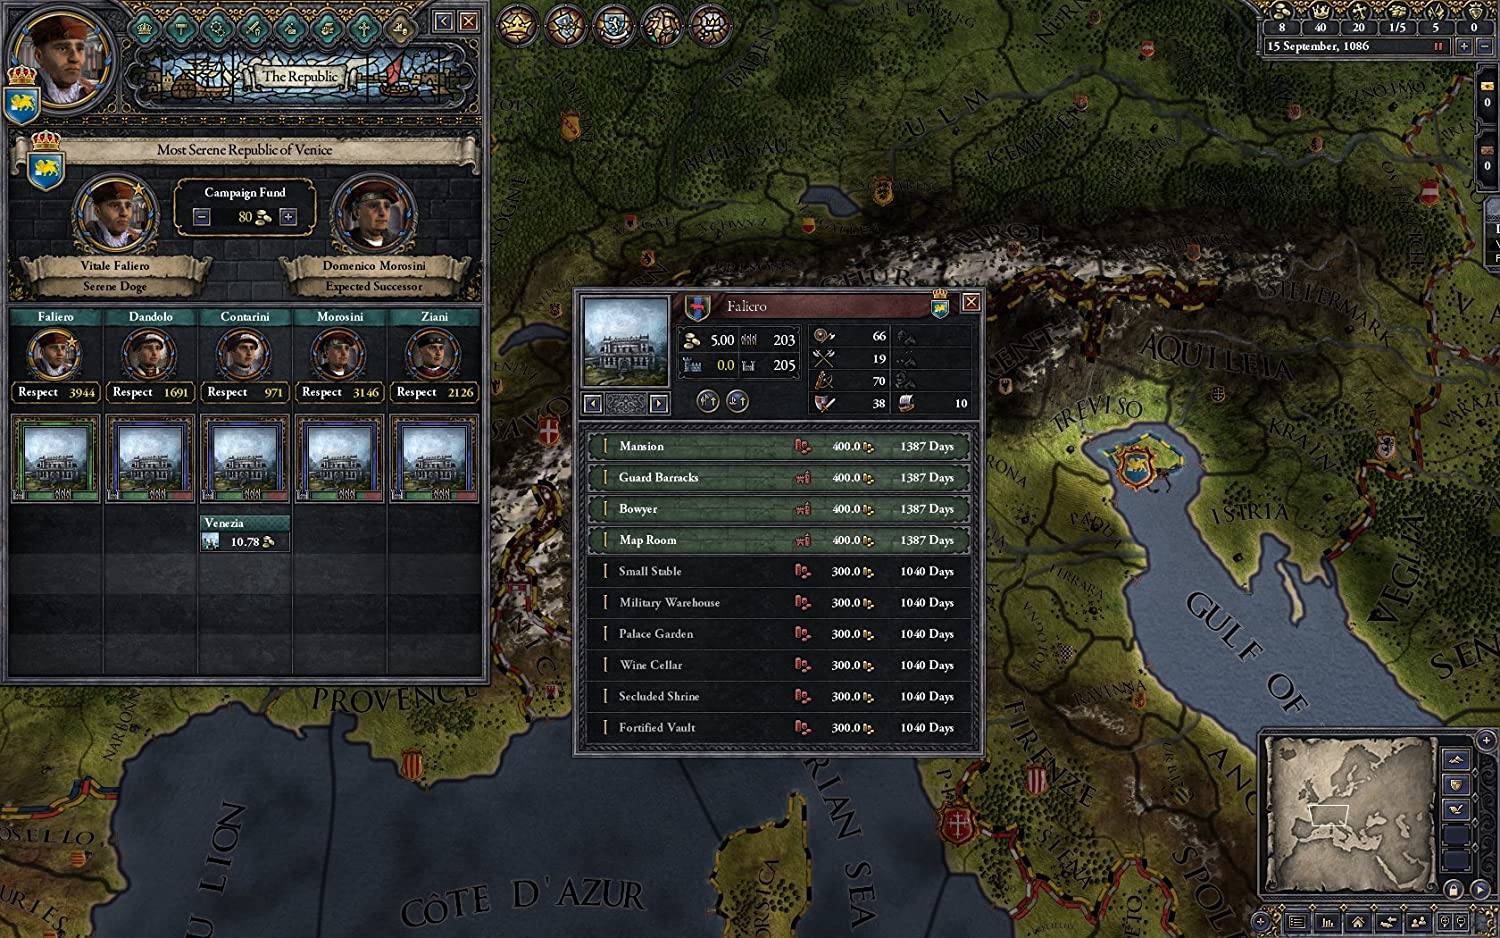 Amazon com: Crusader Kings II: The Republic DLC [Download]: Video Games